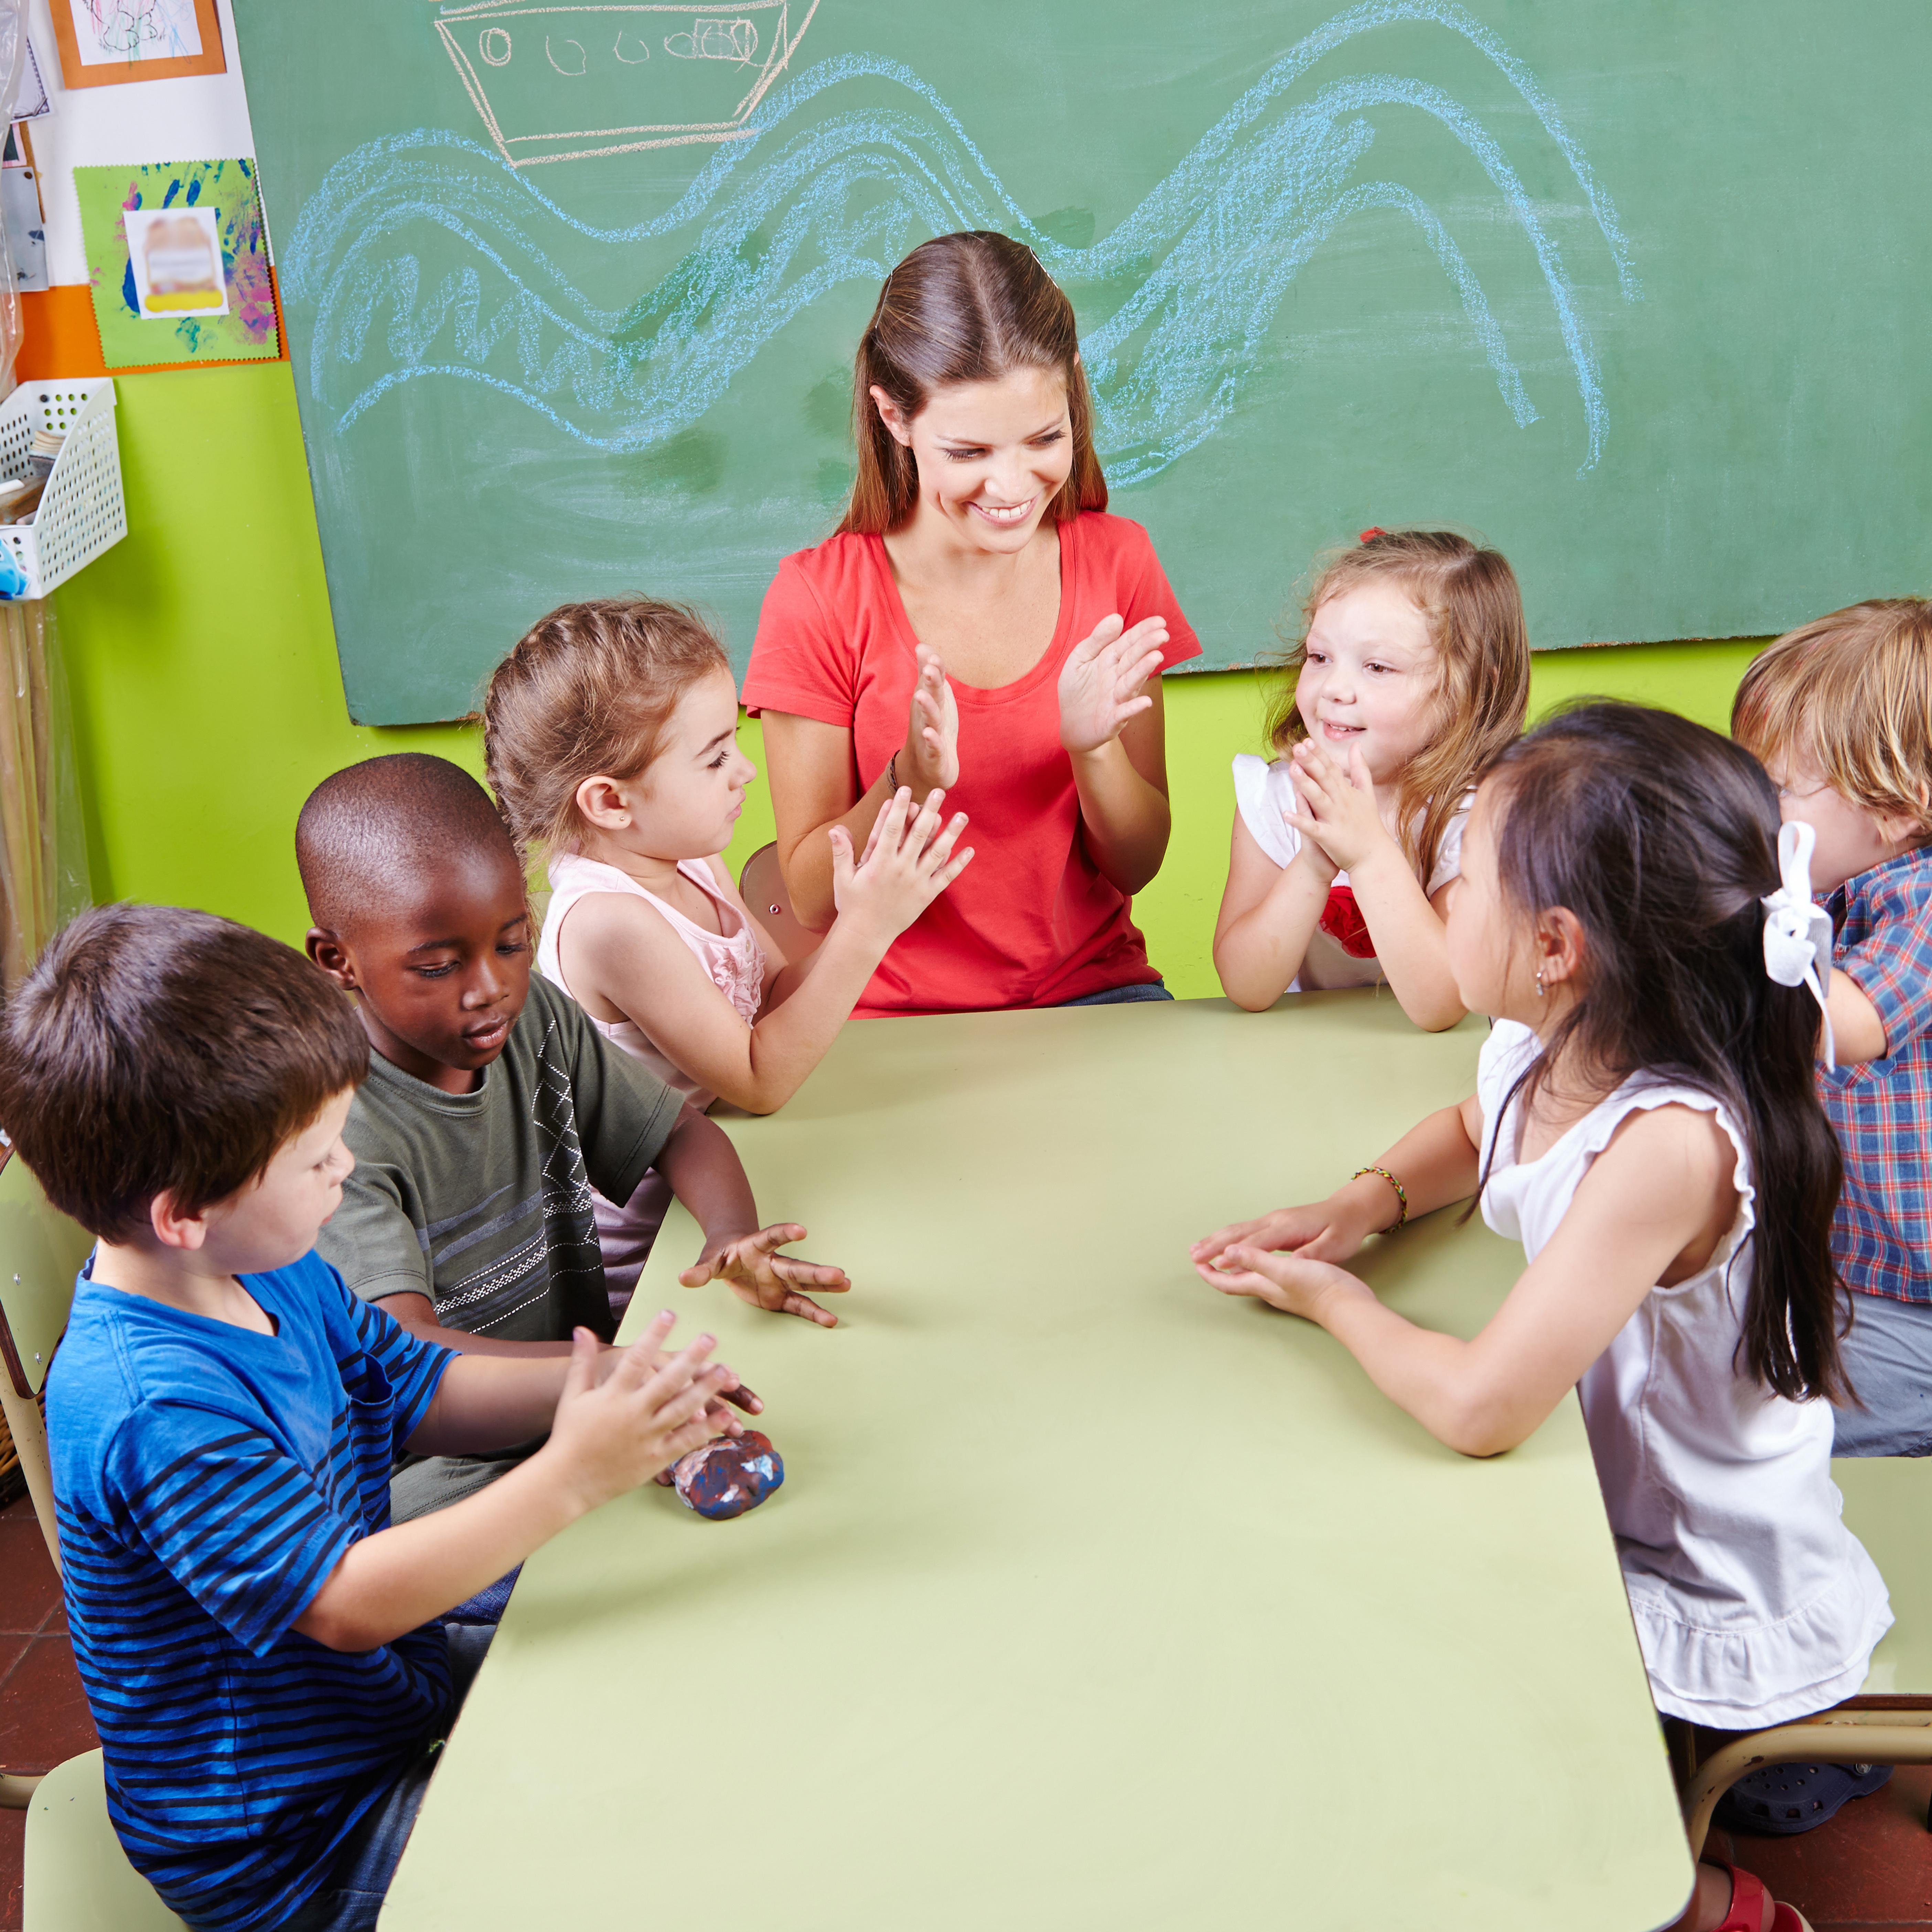 New Course From Childcare Education Institute On Effective Class